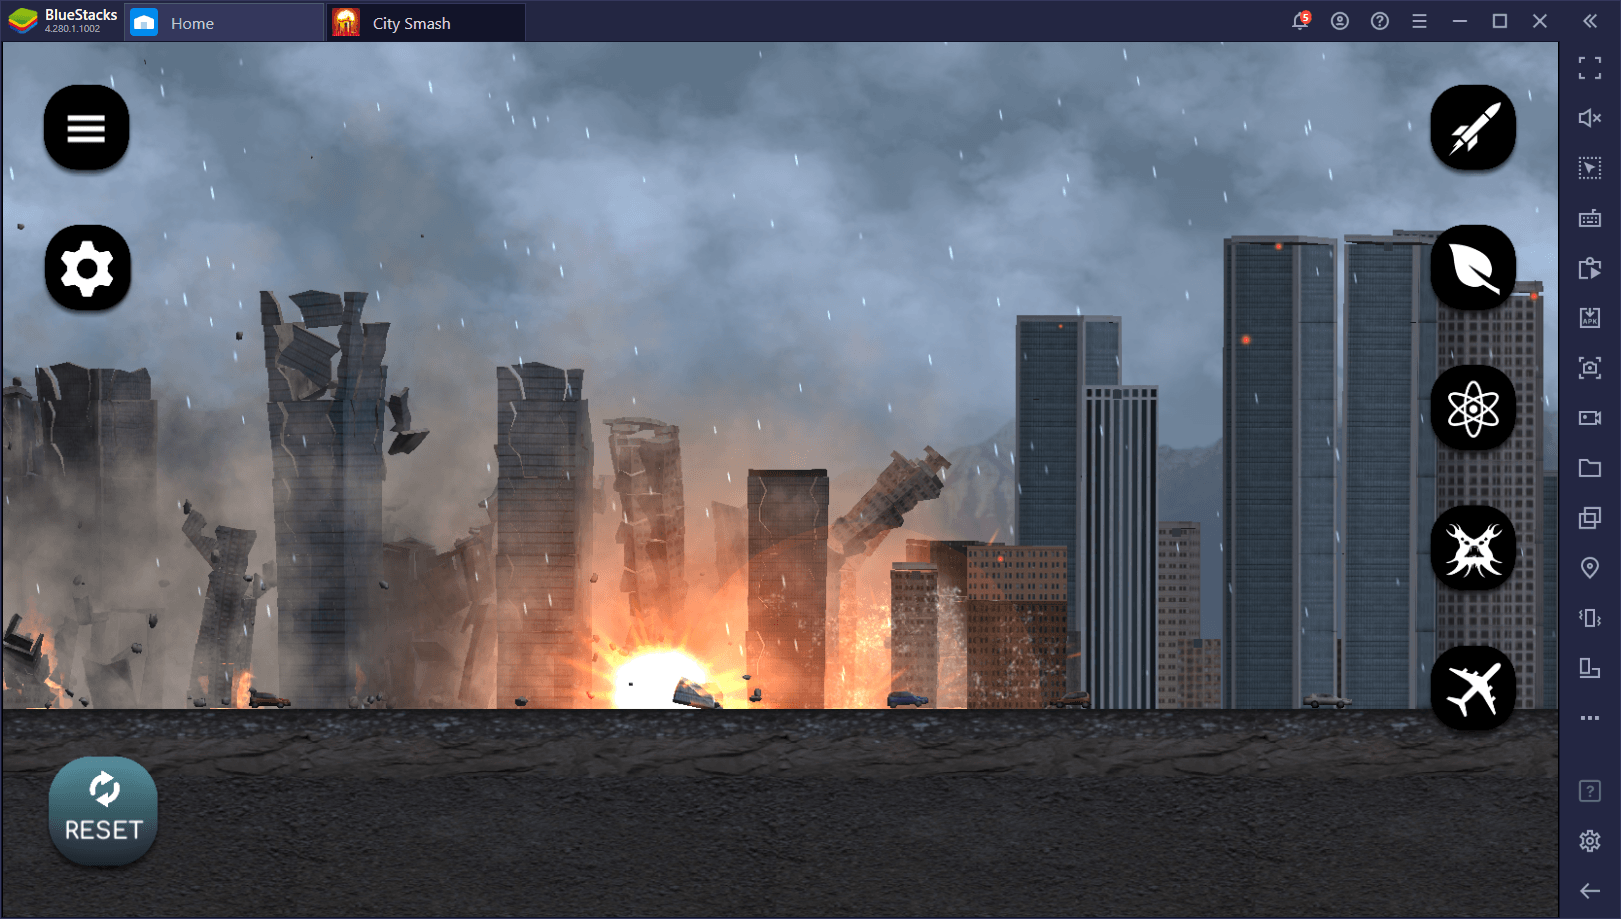 City Smash – The Best and Most Fun Ways to Destroy Cities